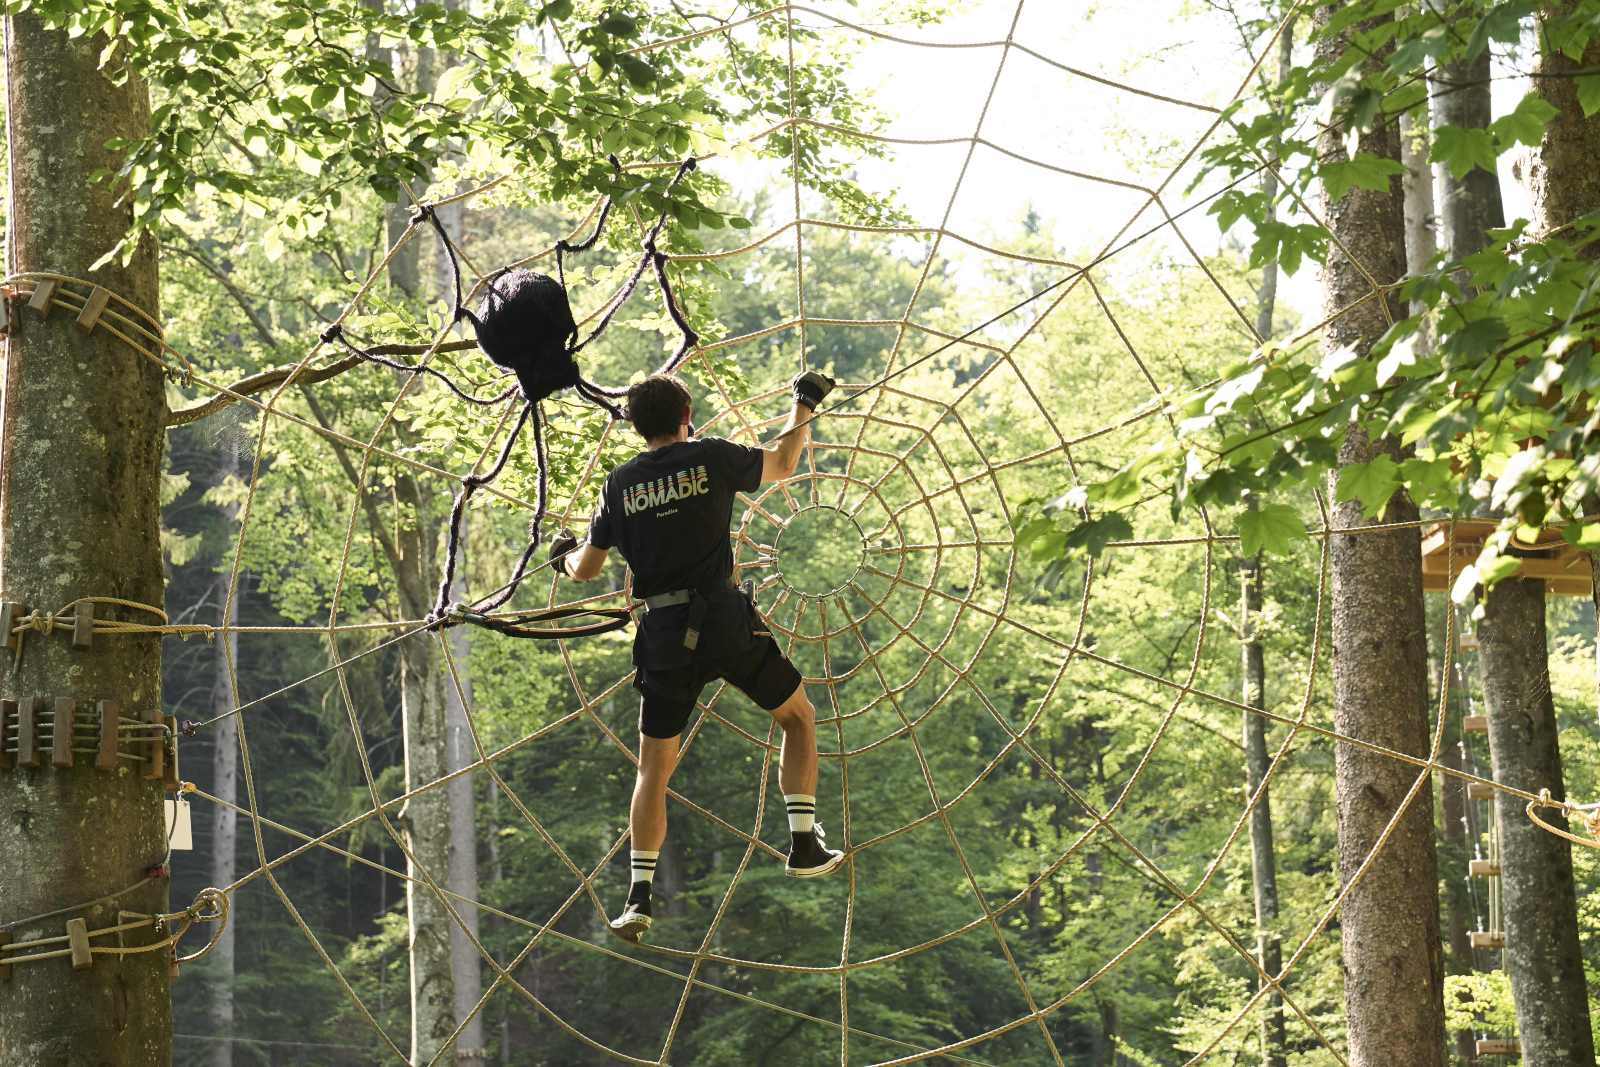 man climbing in spider web made of hemp ropes